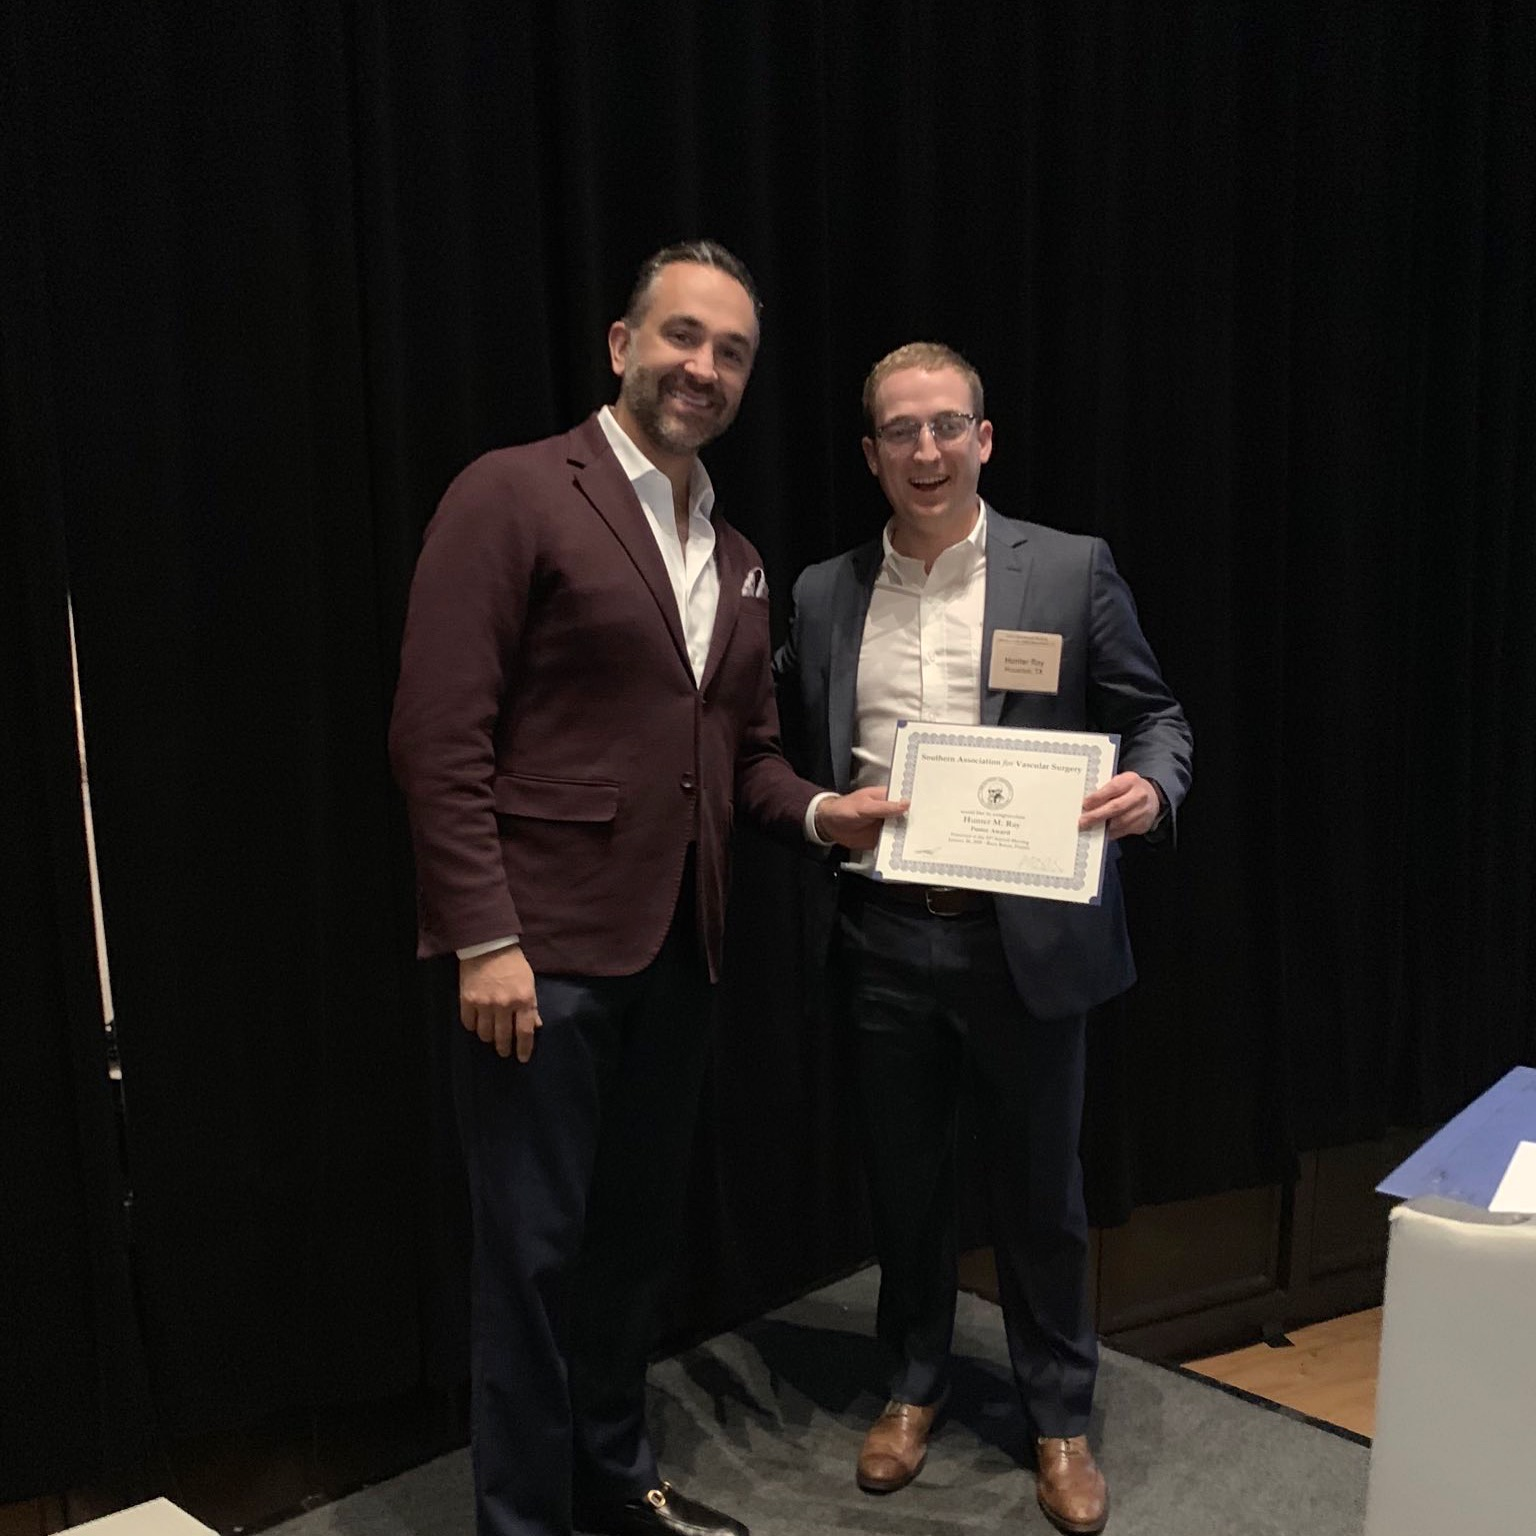 Dr. Ali Azizzadeh (right) with first place poster award winner Dr. Hunter Ray (left) at the 43rd Annual SAVS Meeting